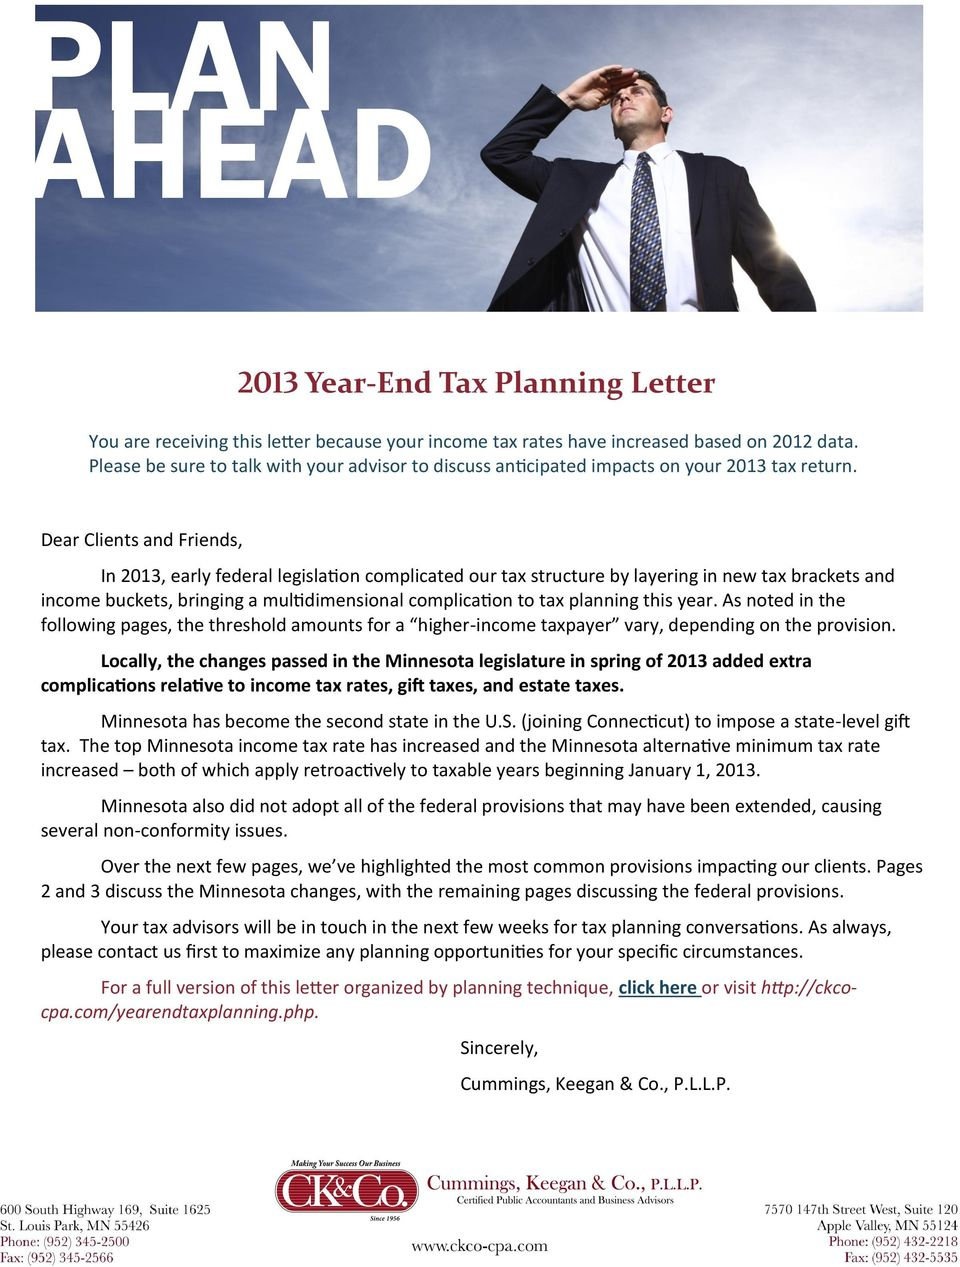 Dear Clients and Friends, In 2013, early federal legislation complicated our tax structure by layering in new tax brackets and income buckets, bringing a multidimensional complication to tax planning